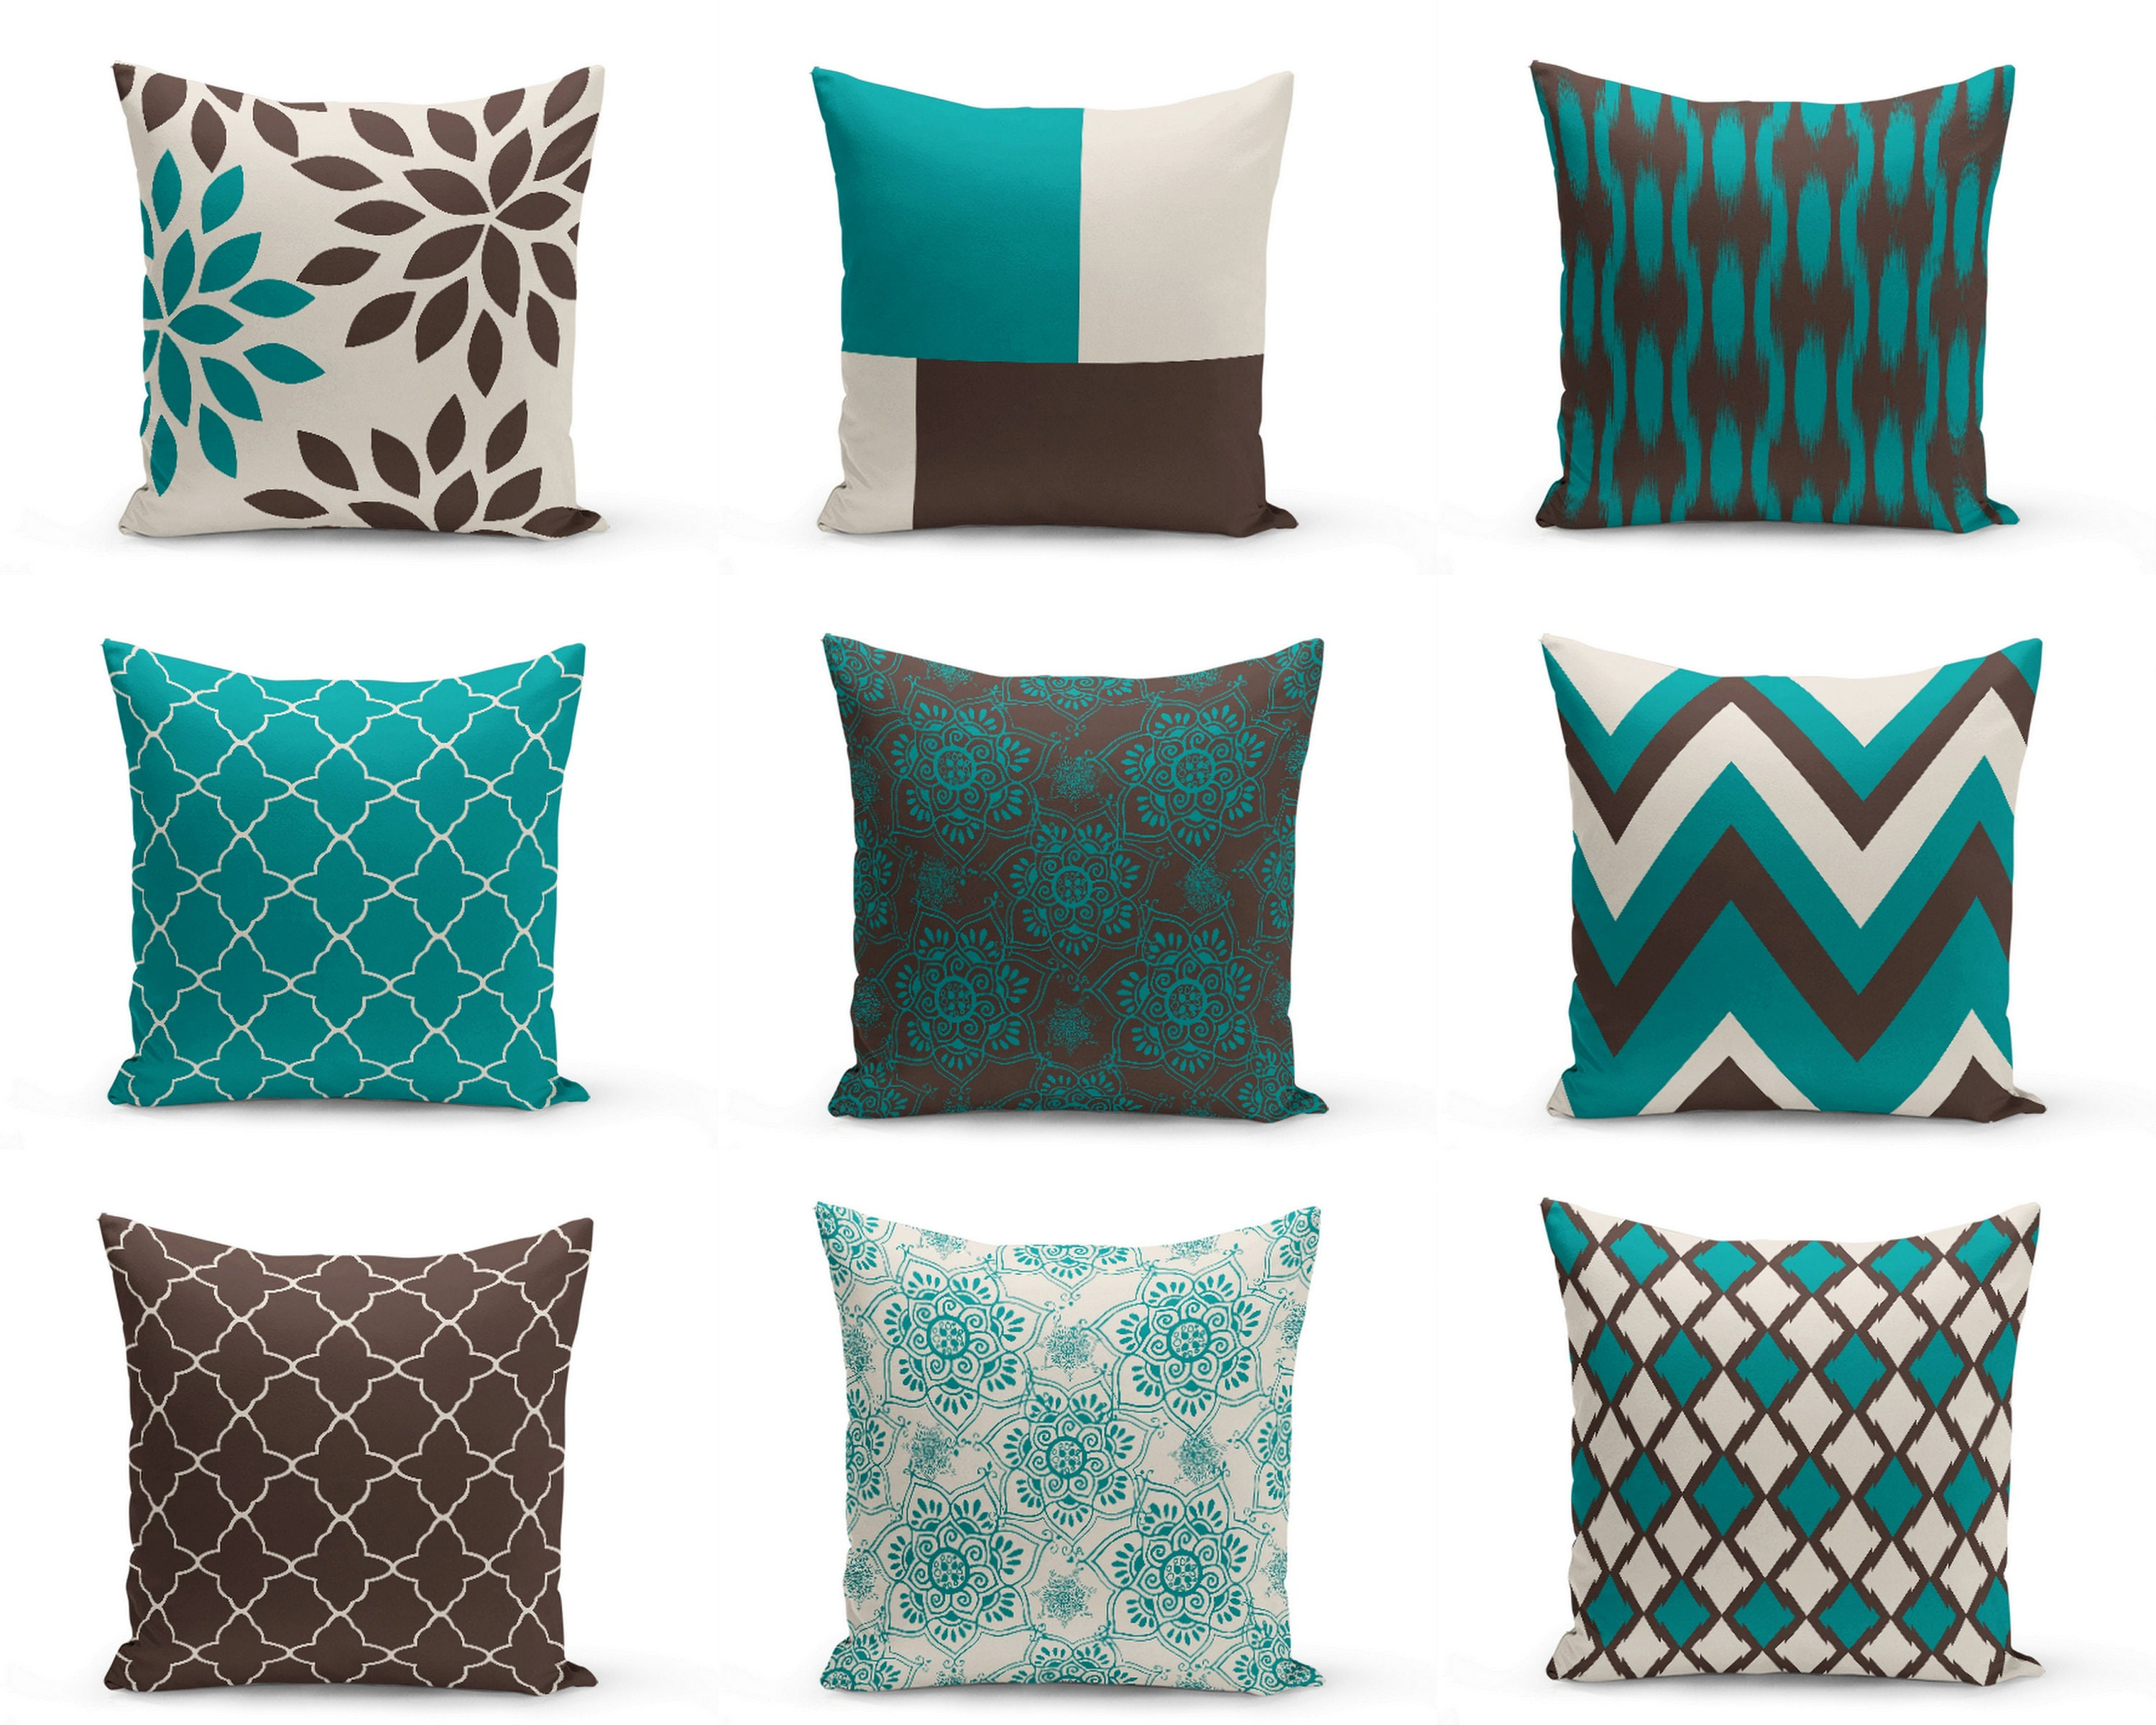 Outdoor Pillows Teal Brown Beige Outdoor Home Decor